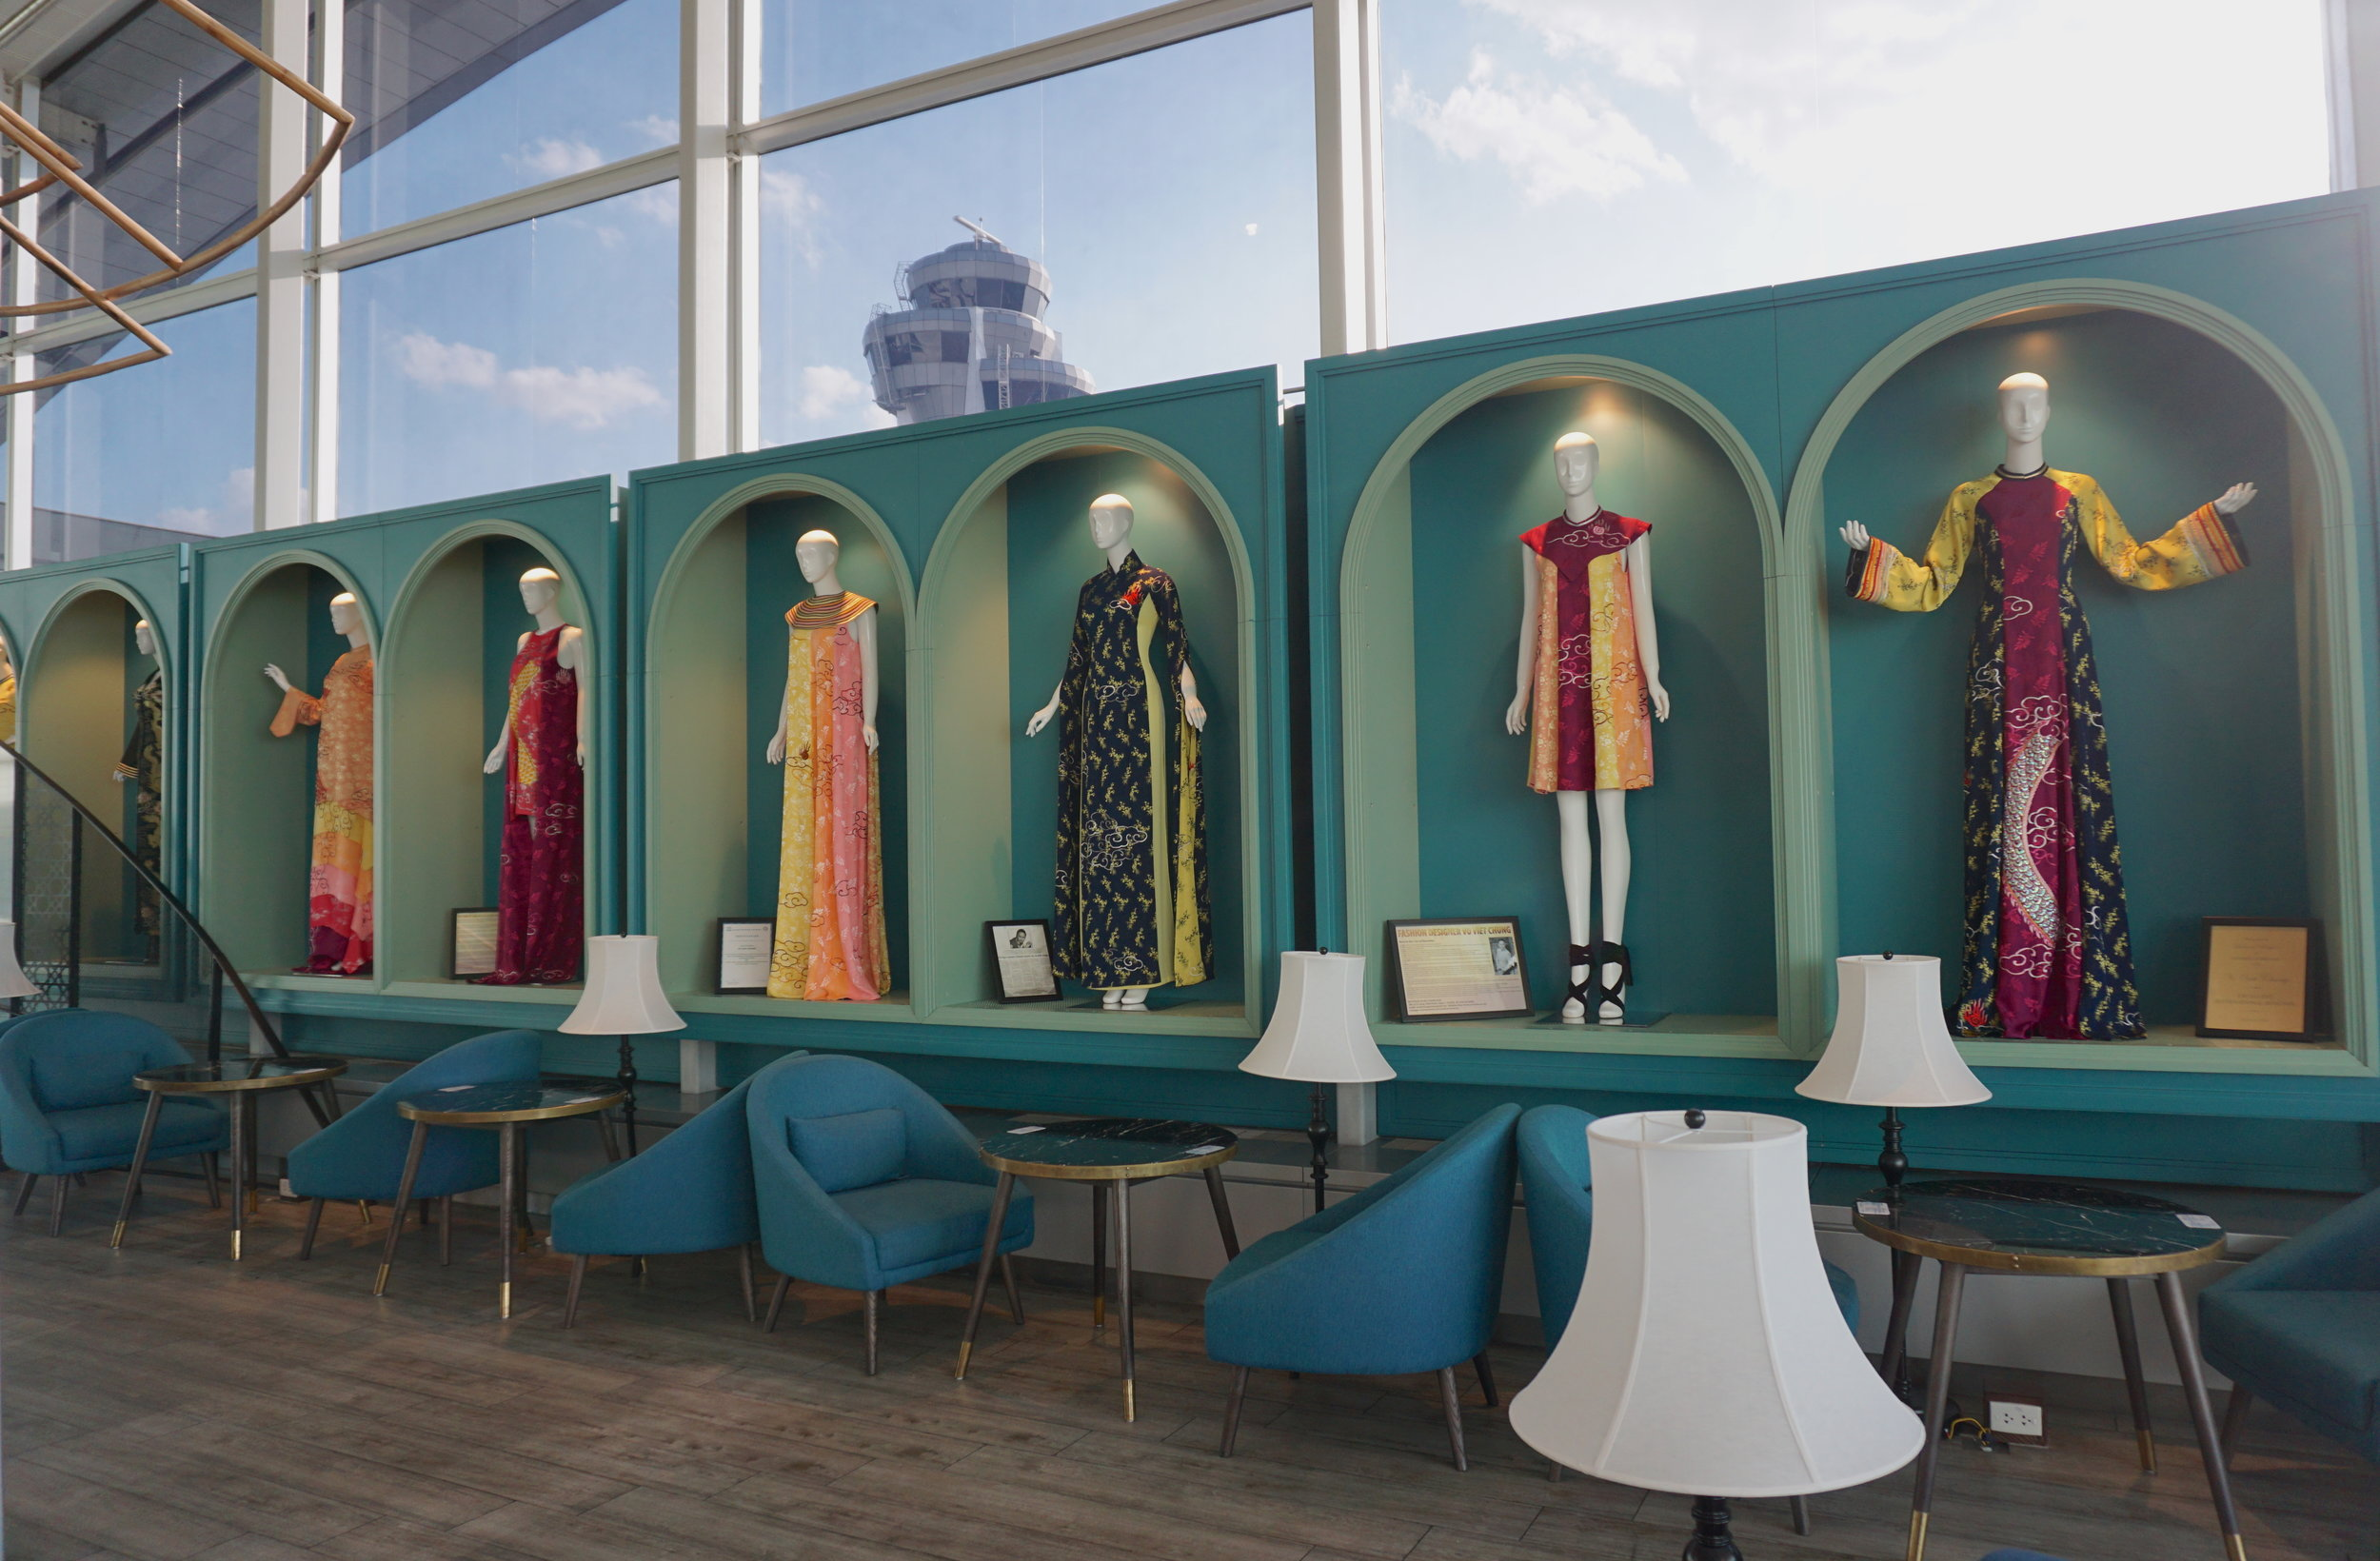 Gallery of Vietnamese traditional dresses- an impressive touch to the lounge